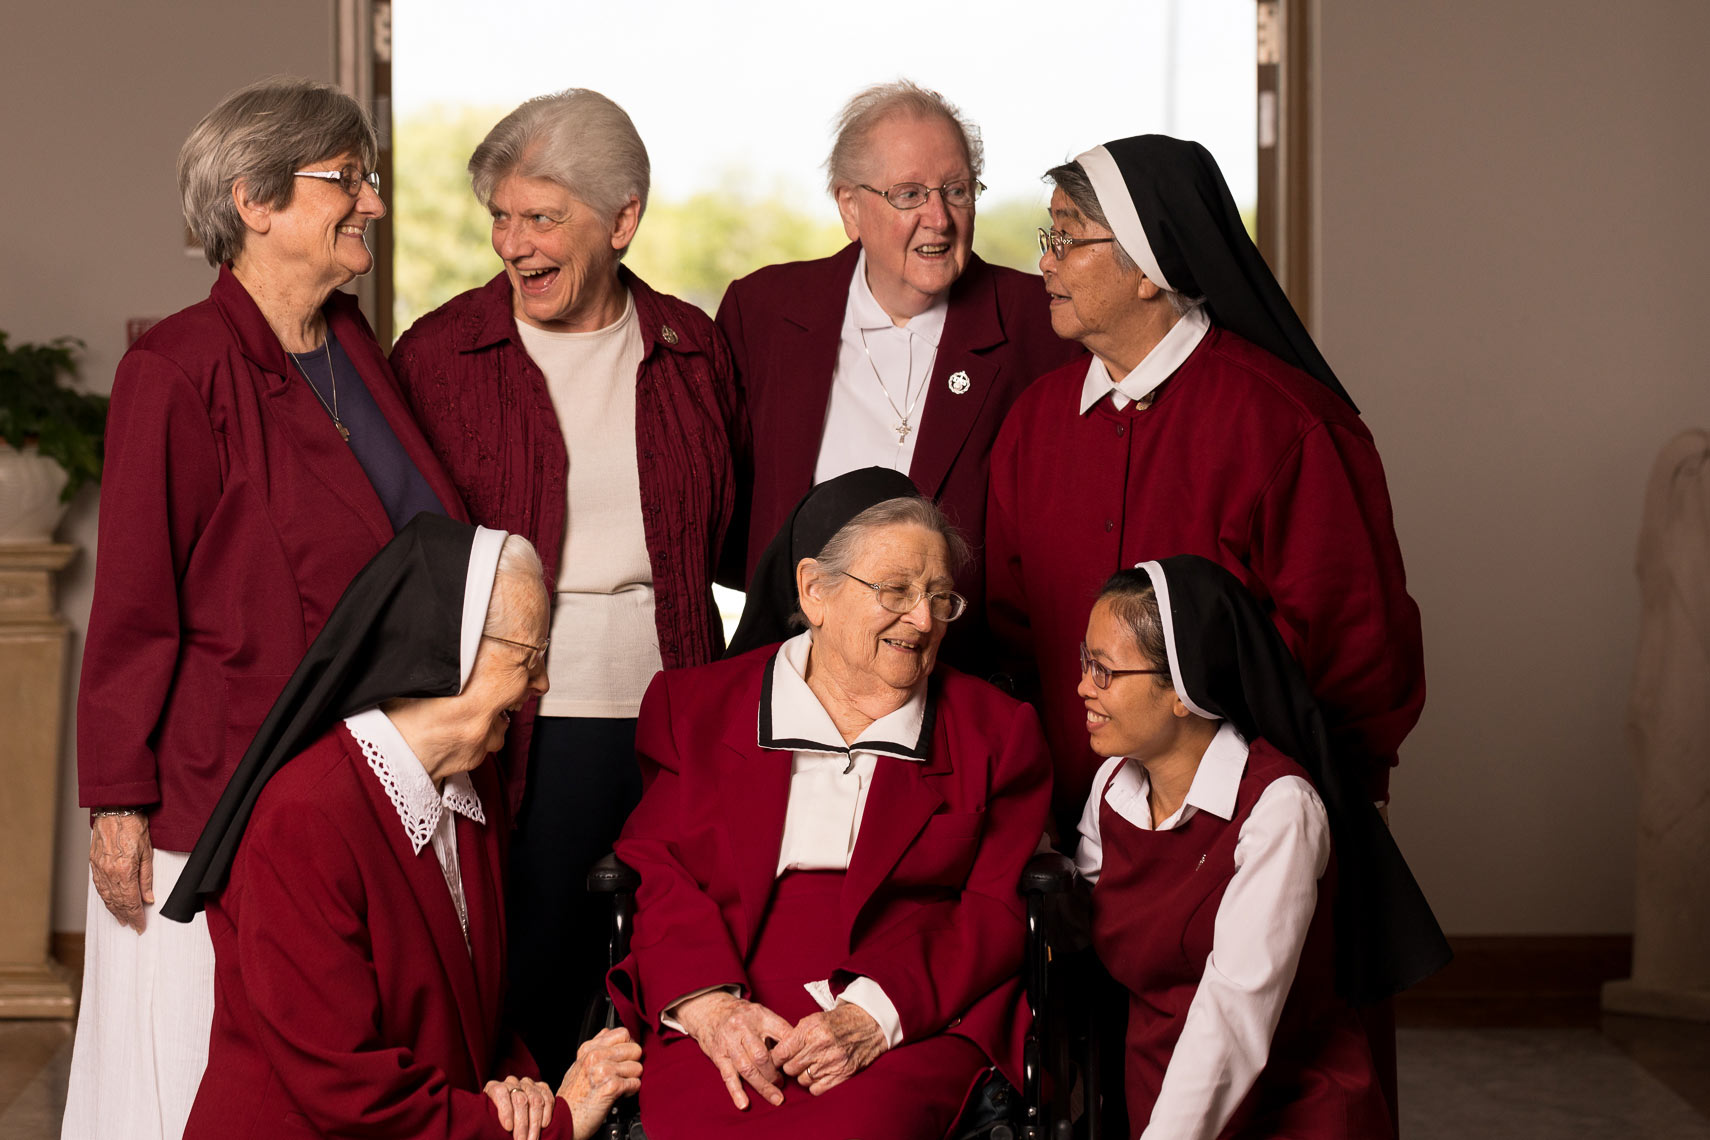 incarnate-word-nuns-corpus-christi-jason-risner-photography-1561a